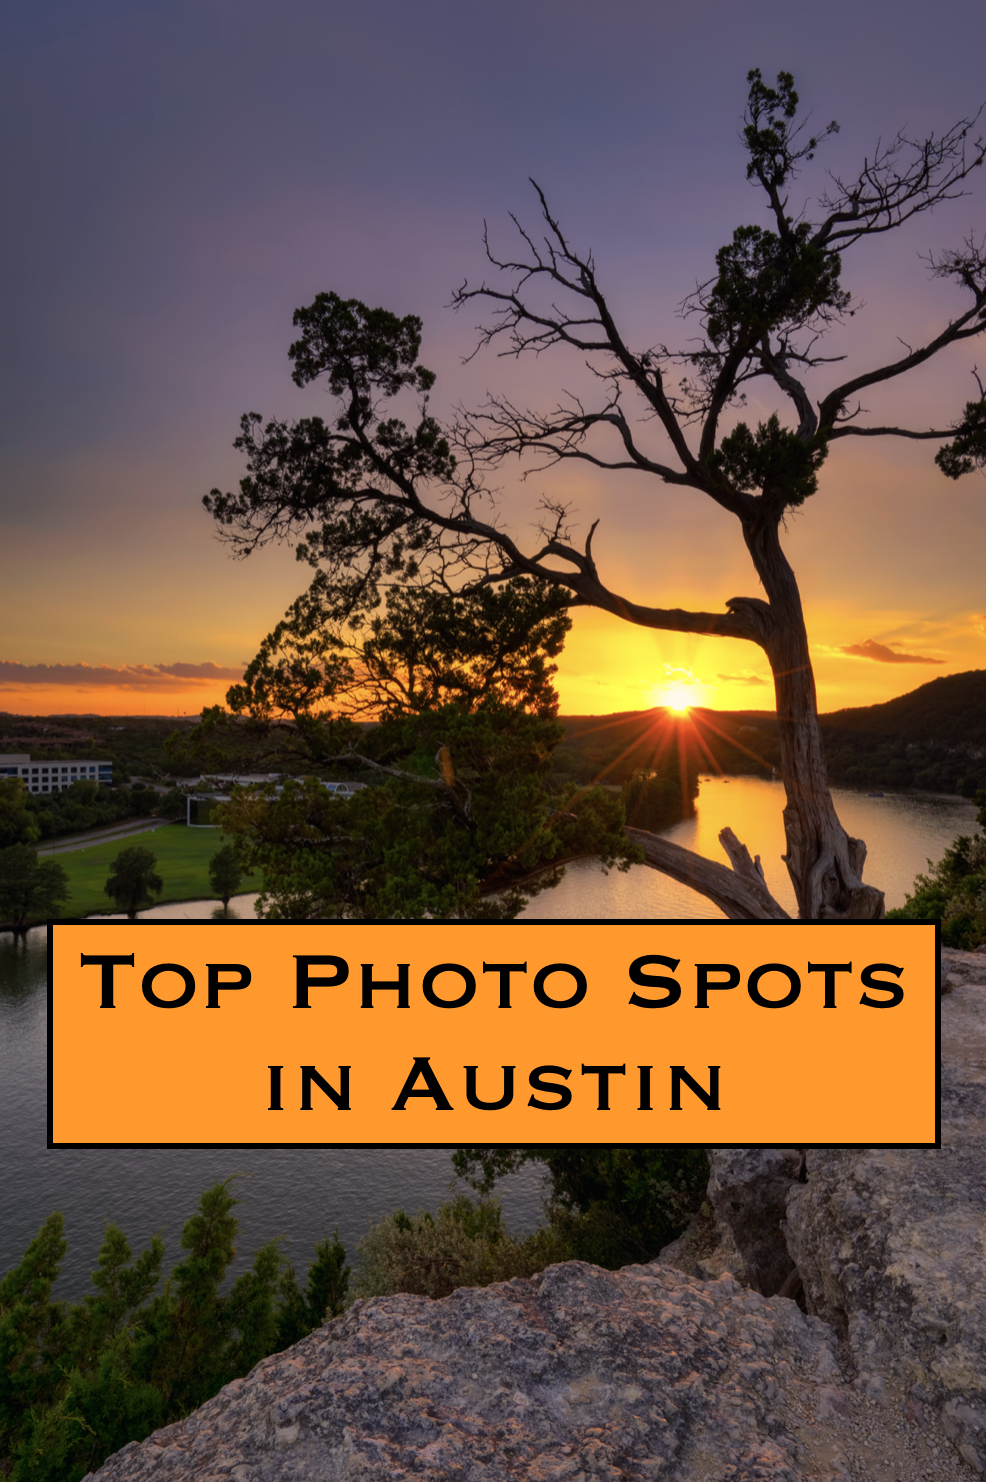 Best Places To Adopt In New York City: Top Photo Spots In Austin